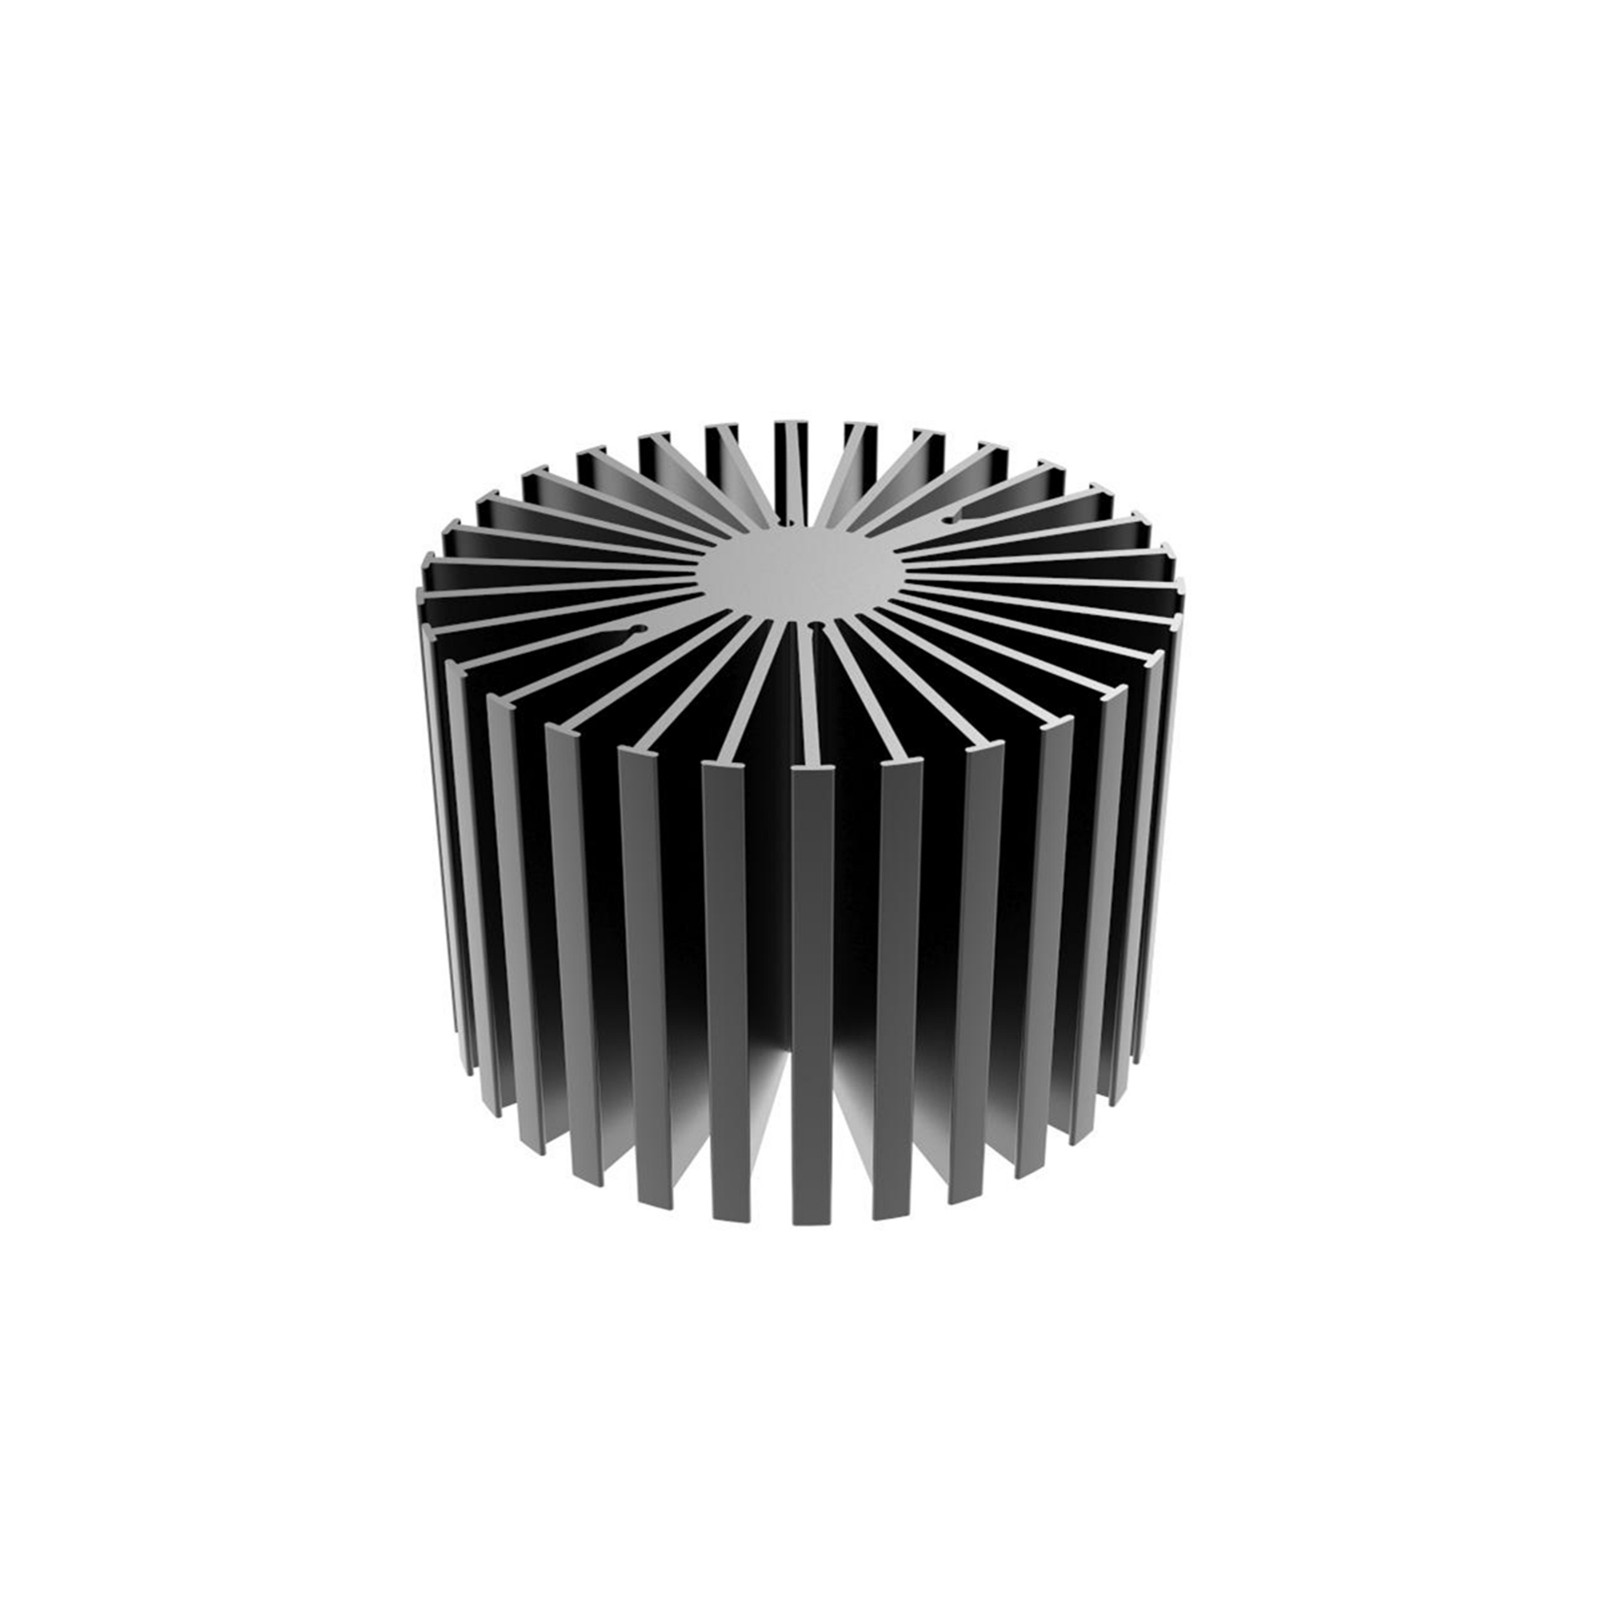 Mingfa Tech-Find Big Heatsink Simpoled-1175011780 Aluminum Extrusion Passive Cooling-3